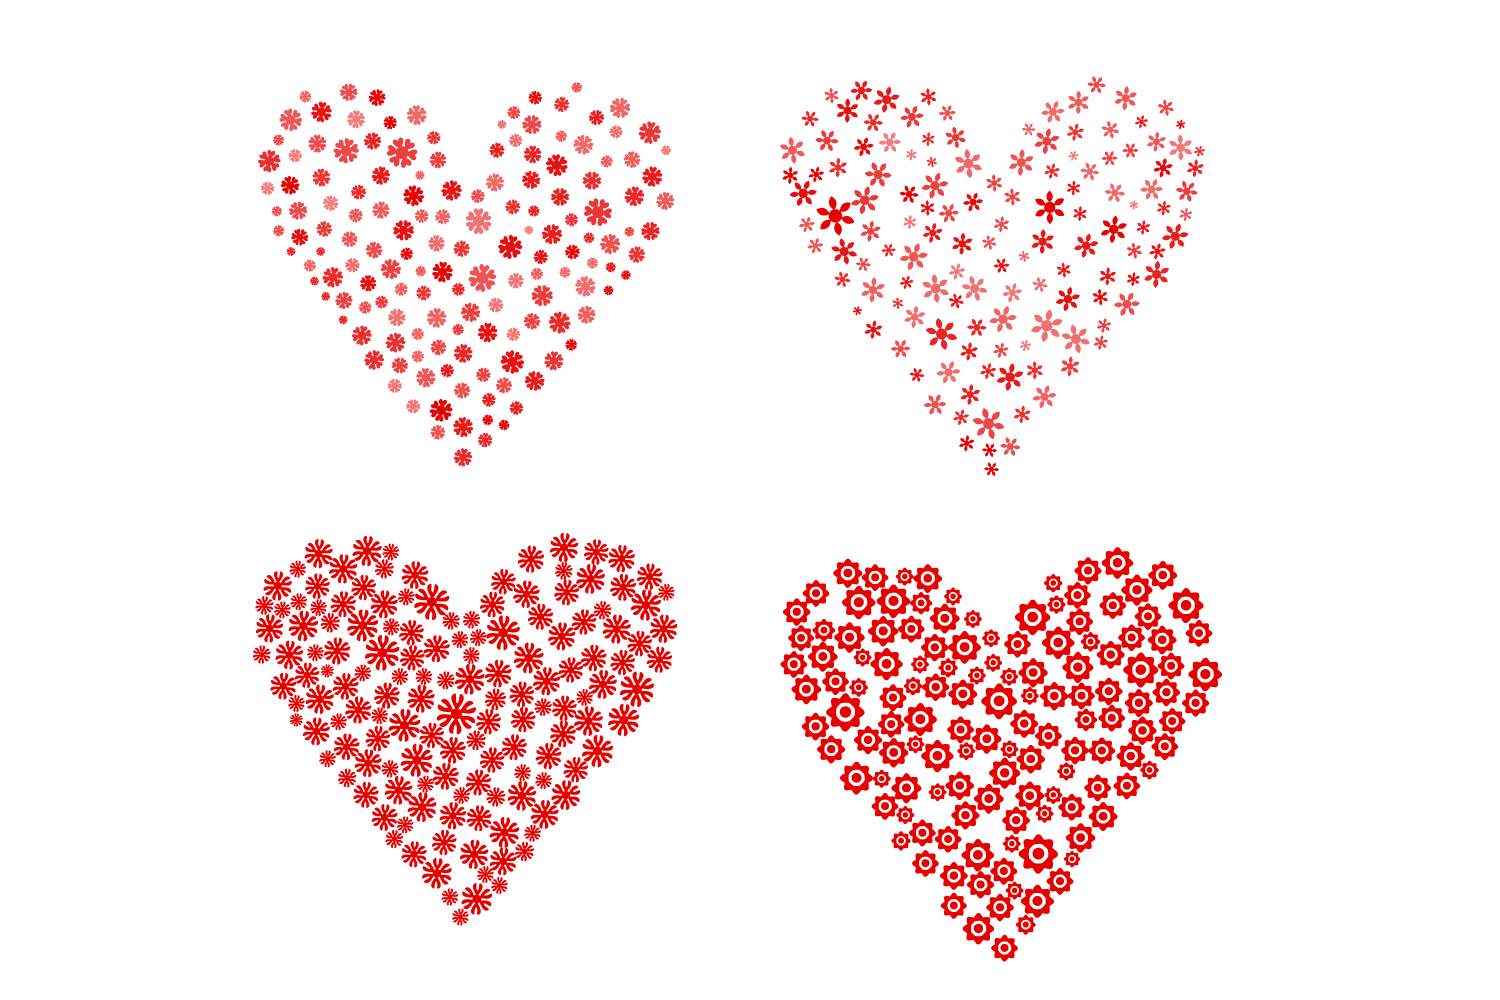 Set of 4 Flower Hearts Shape SVG, Floral Hearts AI, EPS example image 2